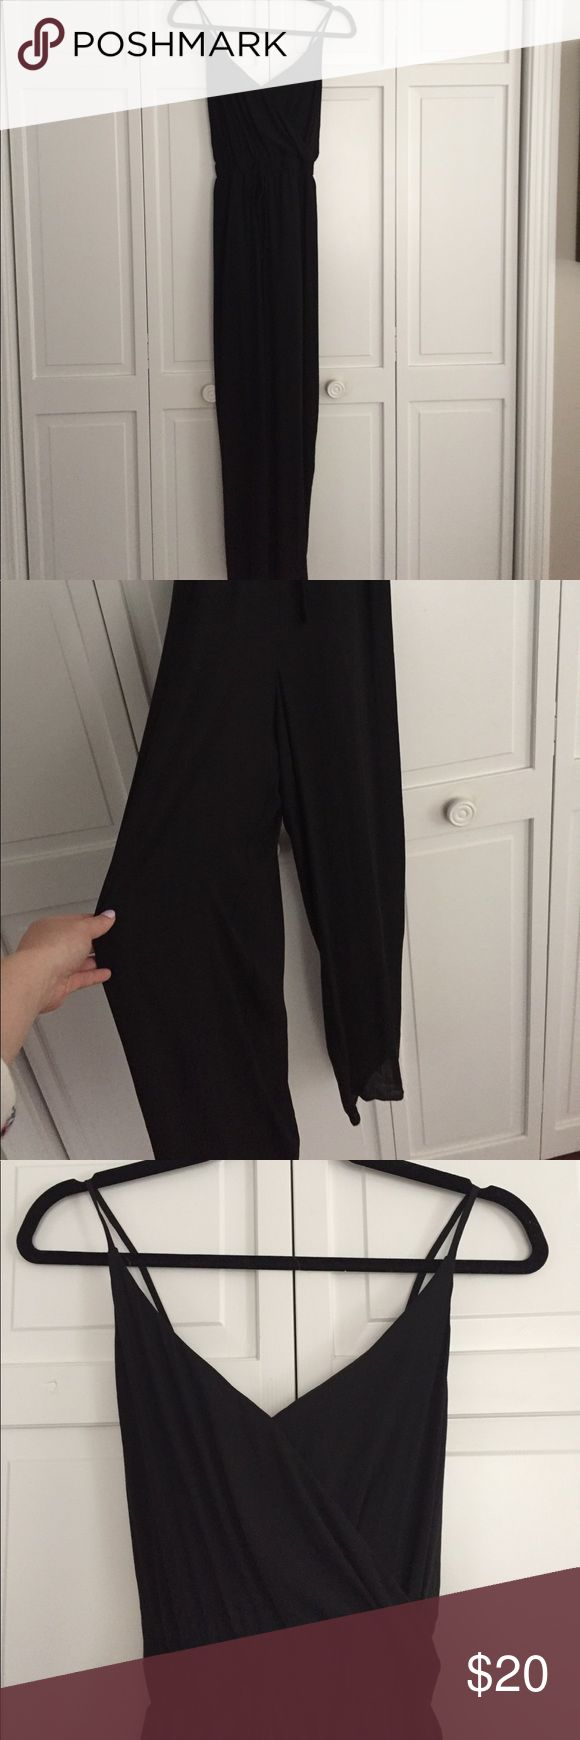 Forever 21 black wide leg jump suit size small Hard to photograph this jump suit has wide leg with a ti waste. Low cross back with adjustable straps. Elastic waste band for pull on styling. Great for summer never worn make an offer! True to size small Forever 21 Other